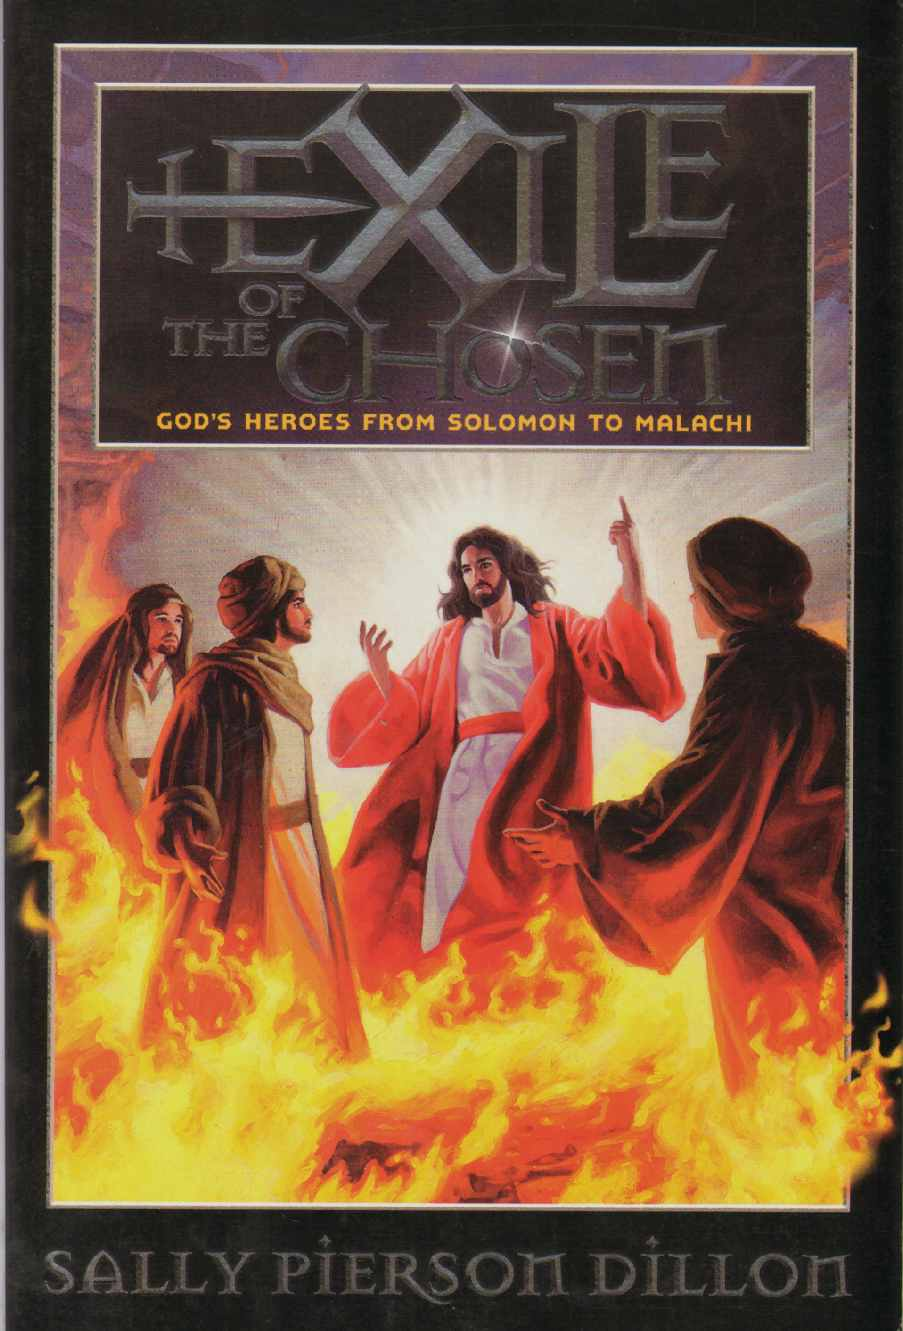 Image for EXILE OF THE CHOSEN God's Heroes from Solomon to Malachi